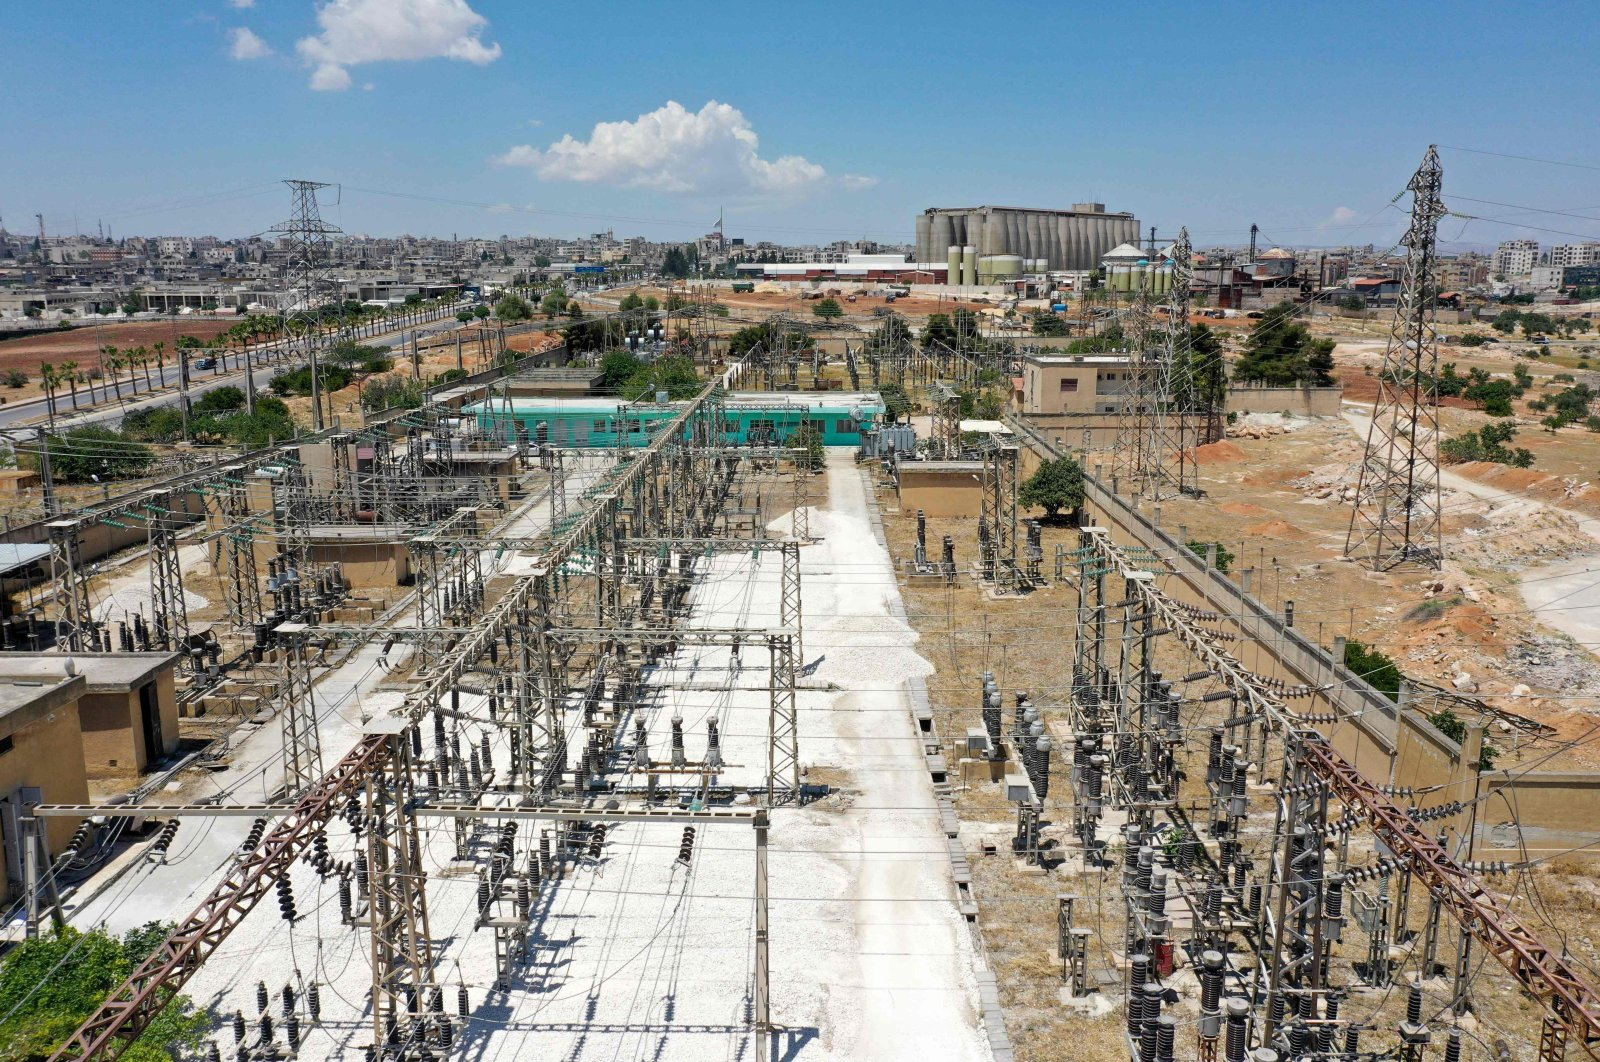 The main power distribution facilities in the opposition-held northwestern city of Idlib, Syria, June 6, 2021. (AFP Photo)